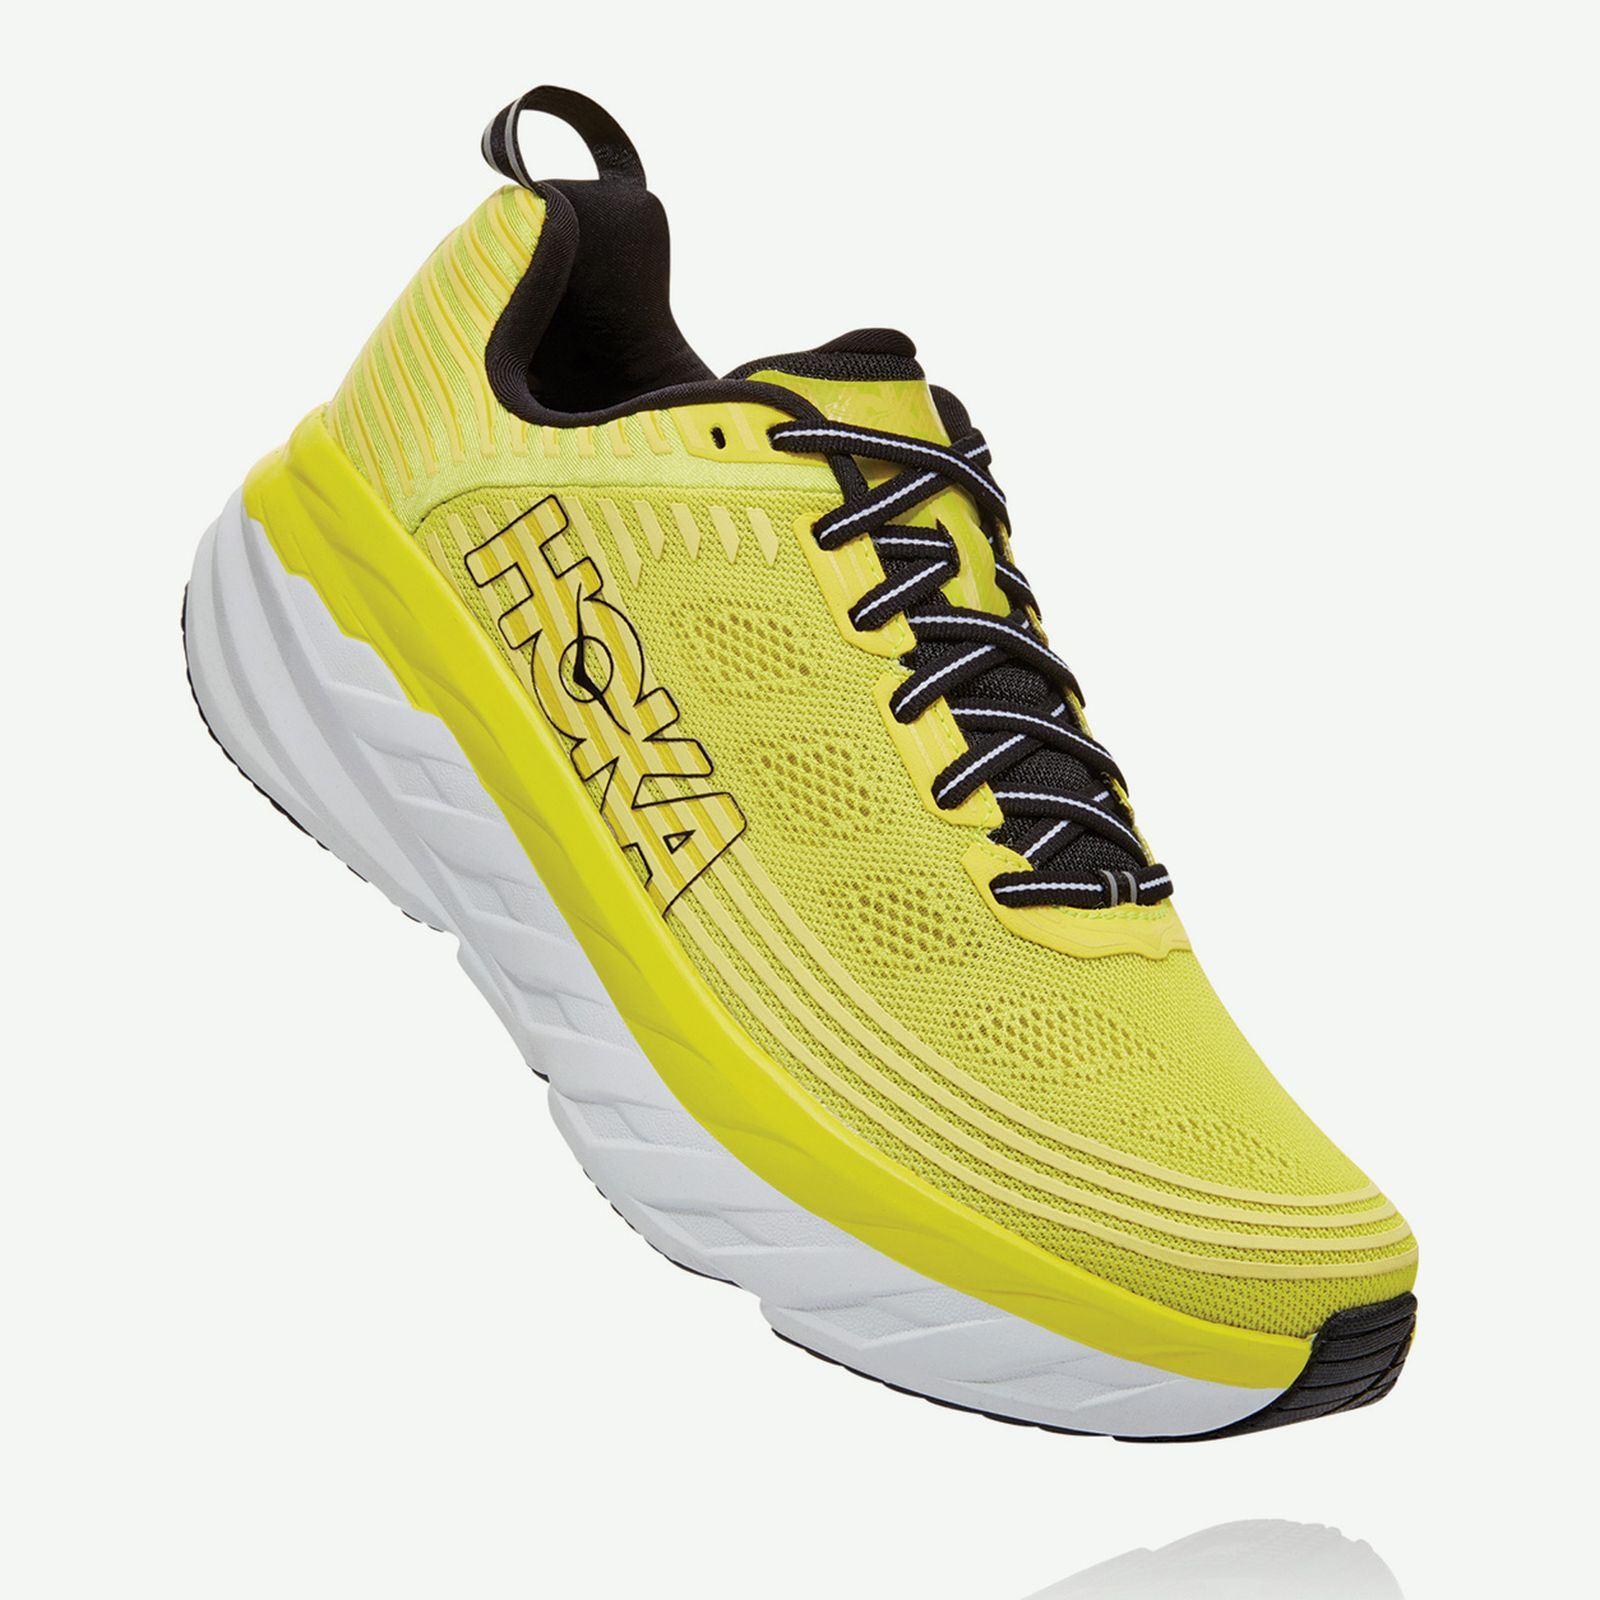 marathon-training-sneakers-guide-13